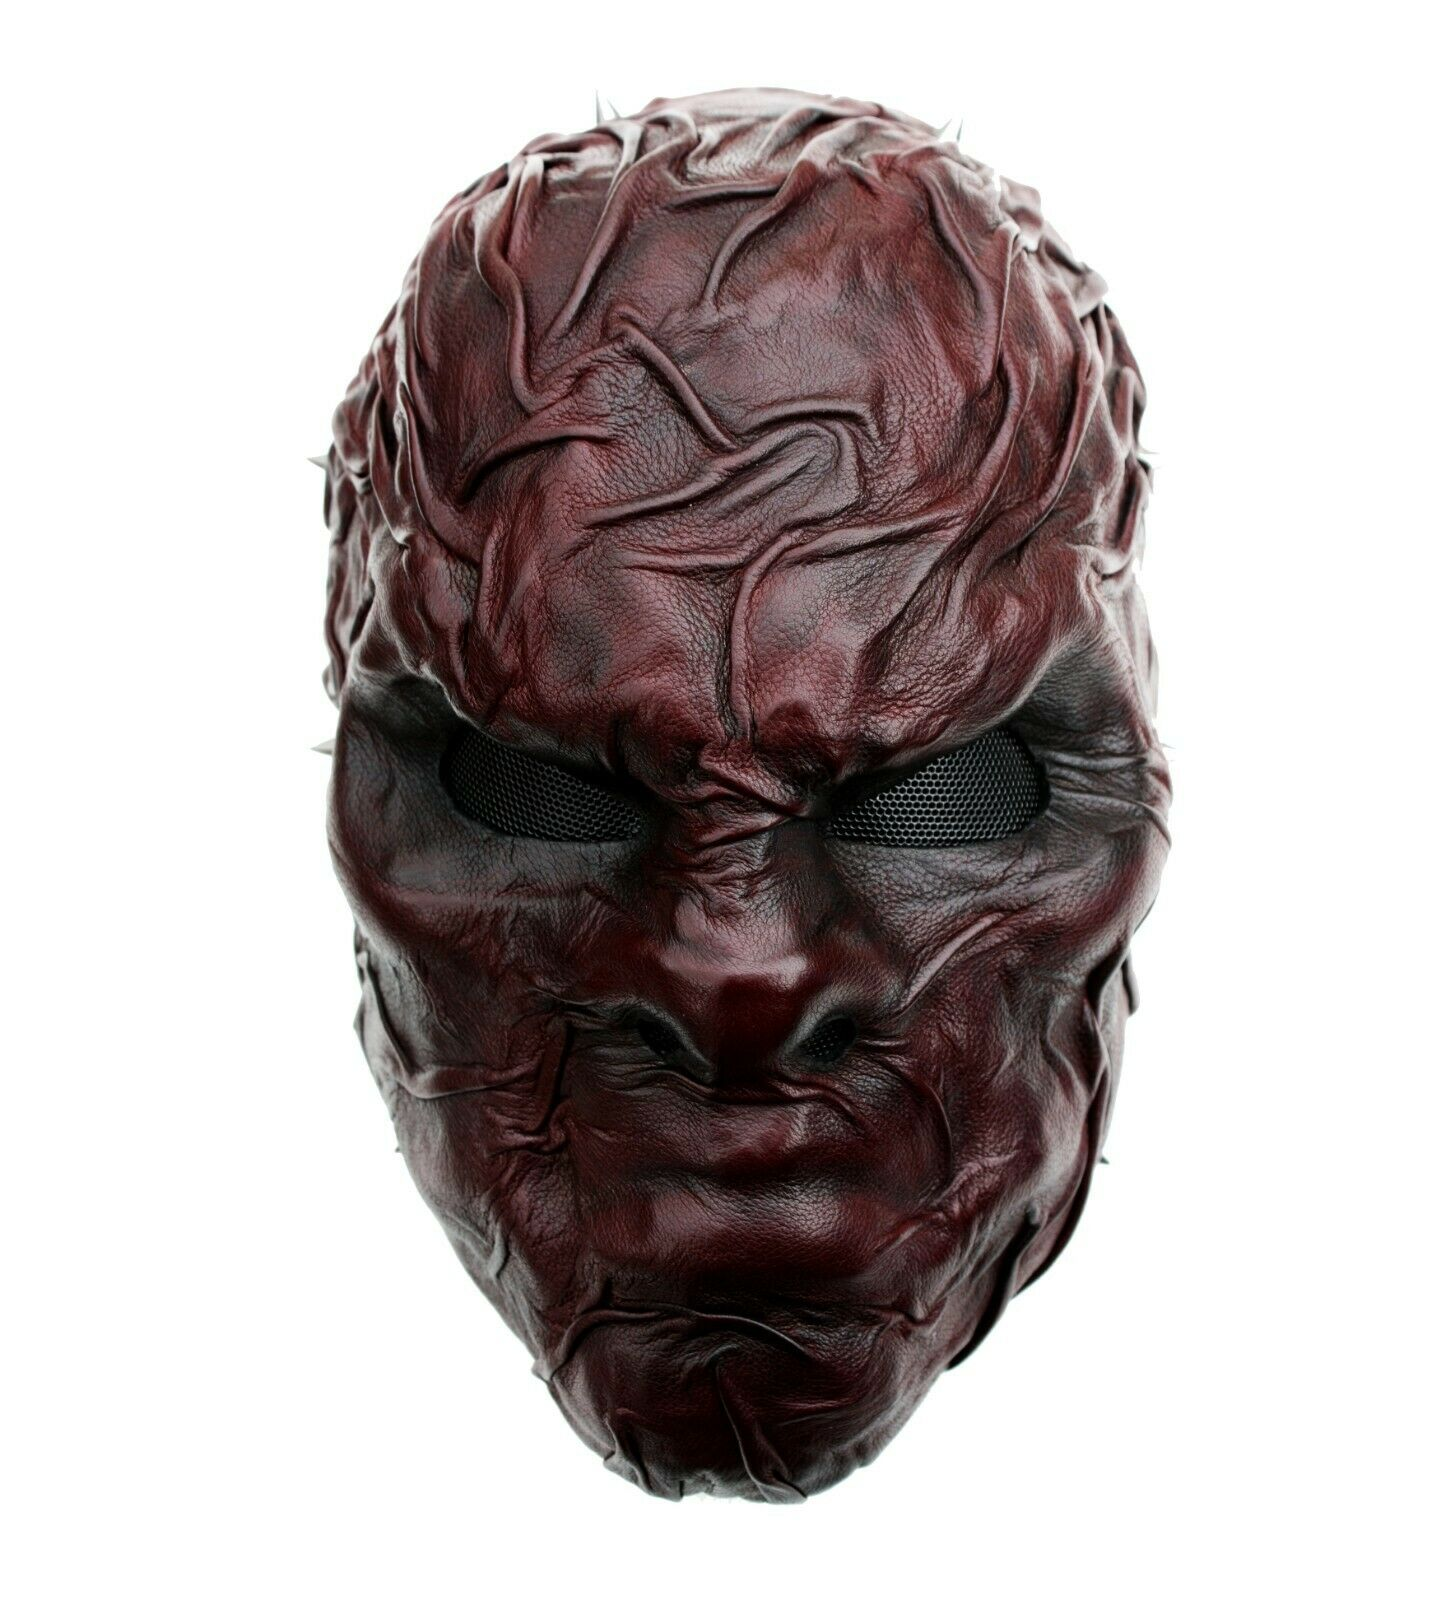 Wearable Leather Mask Steampunk Gothic Metal Bands Theatre Handmade Uk